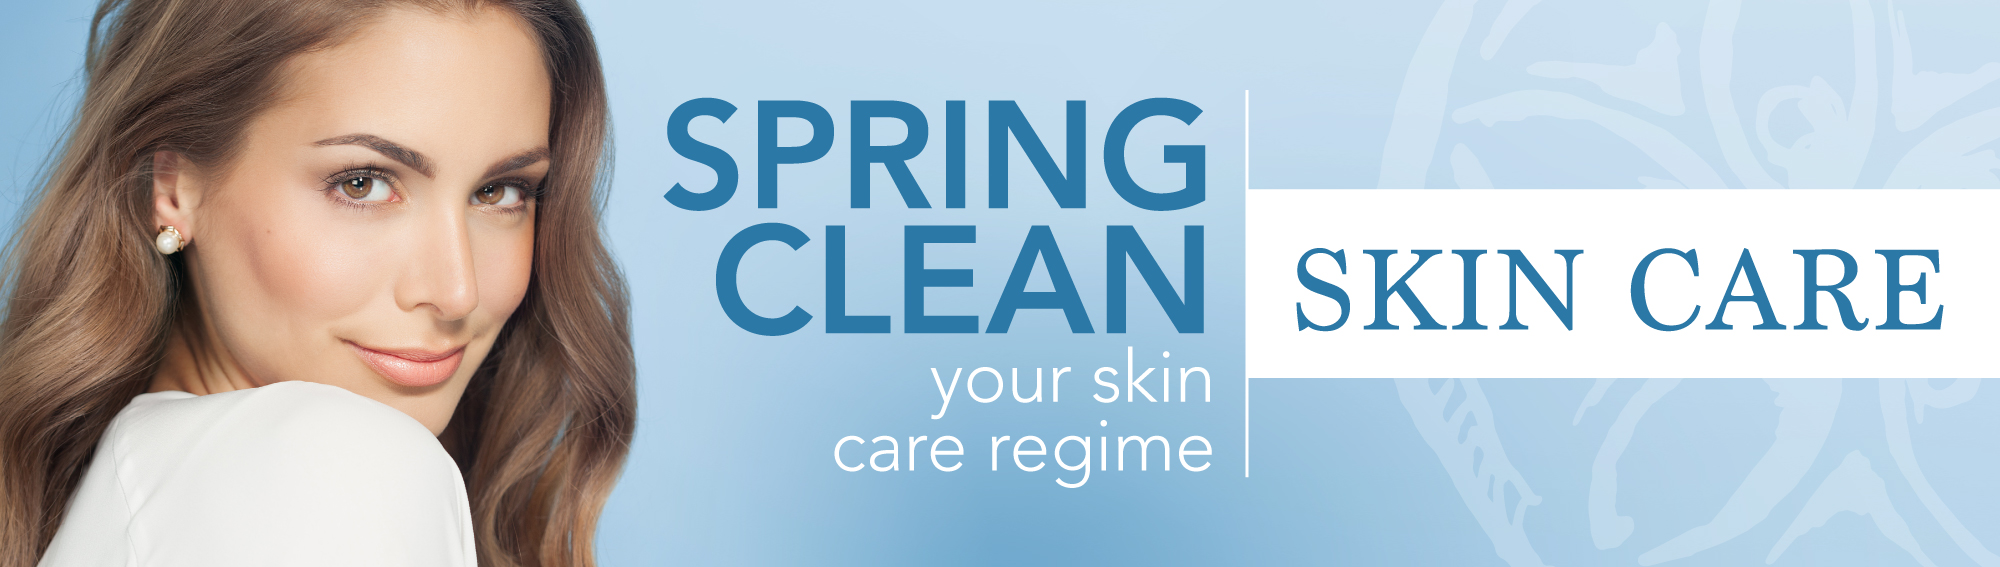 Spring Clean your skin care regime